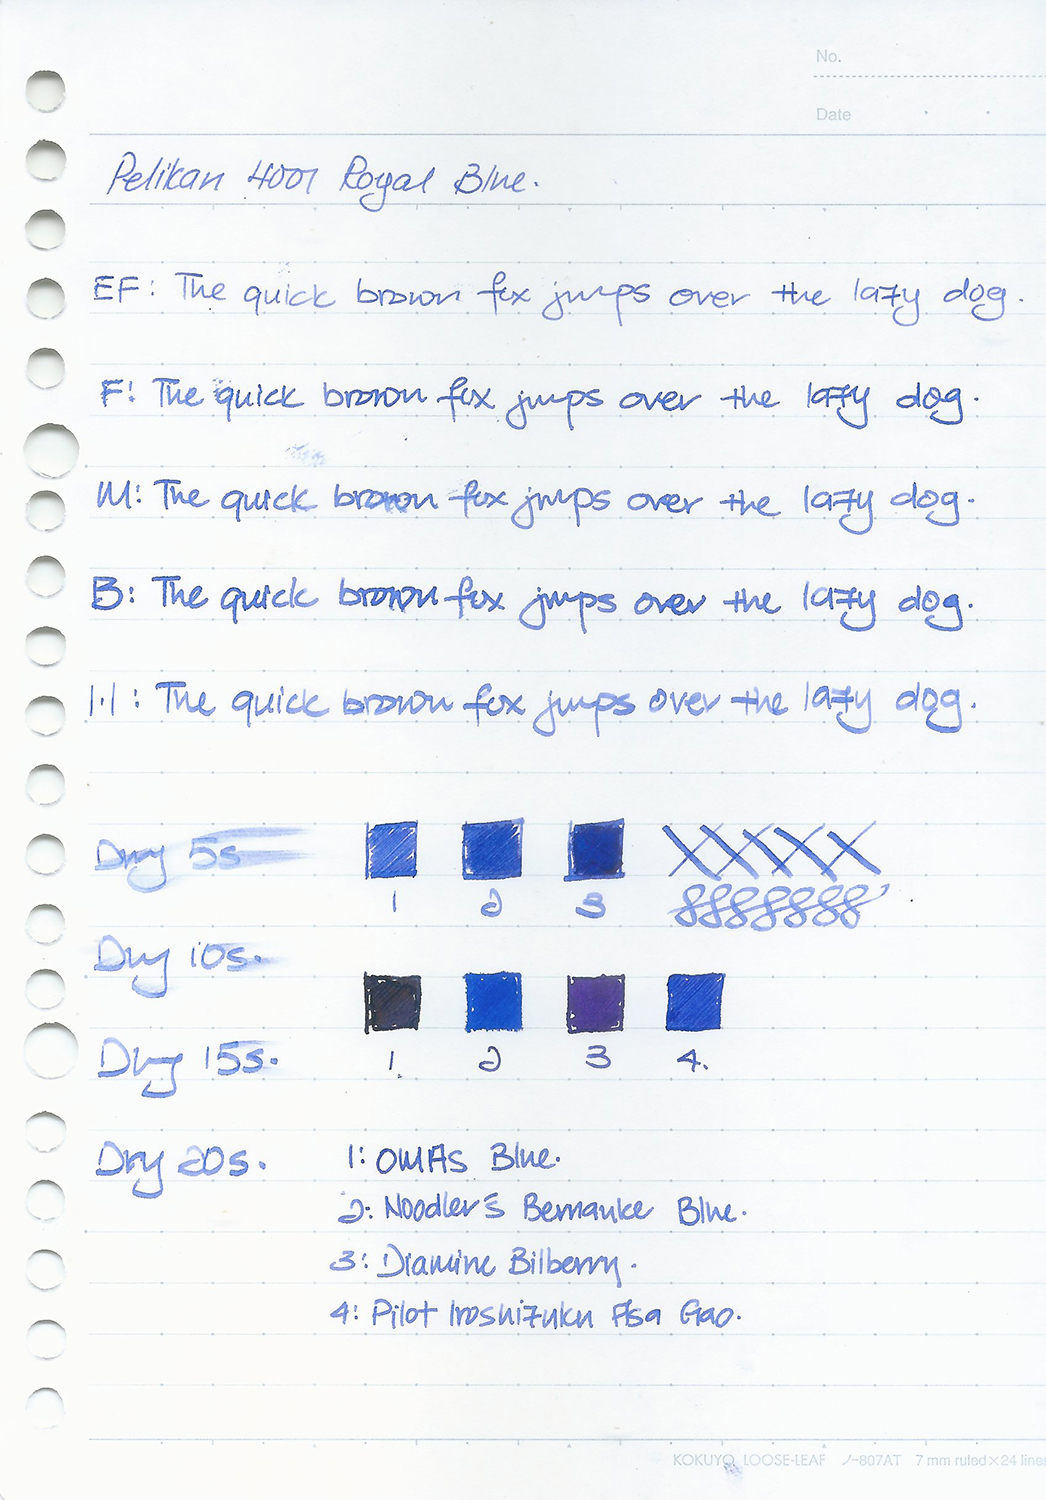 Pelikan 4001 Royal Blue 1.JPG